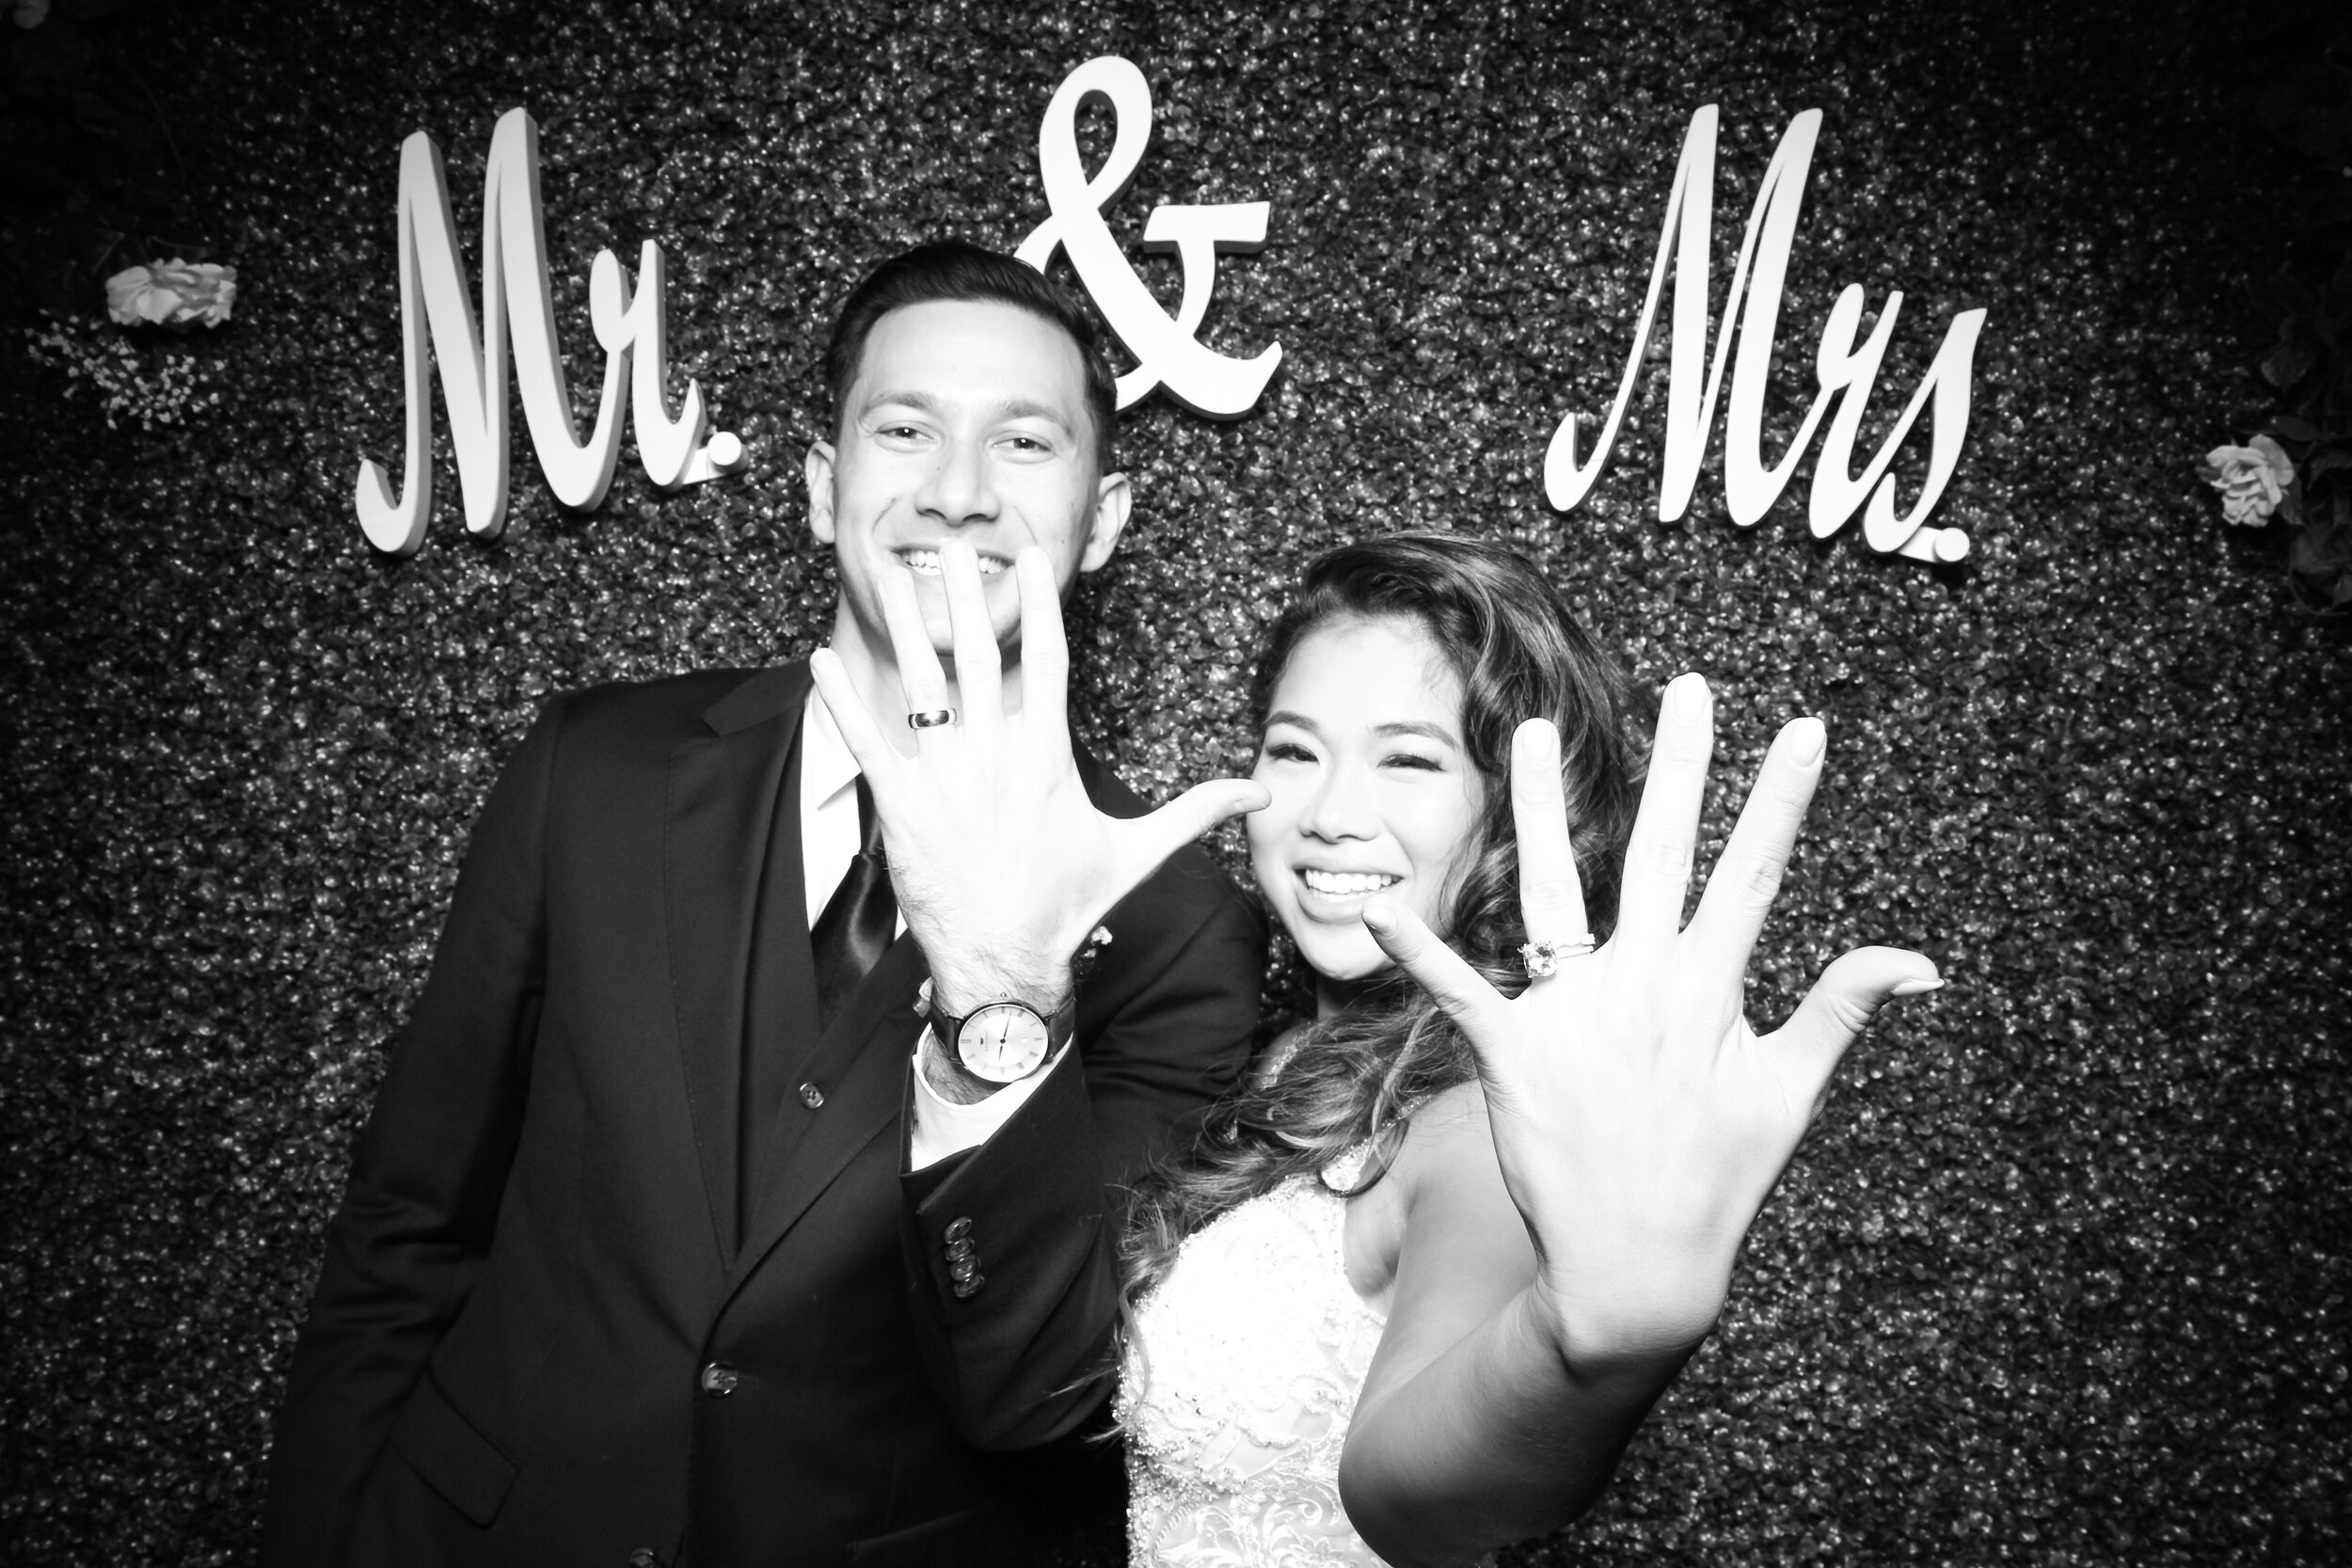 Green_Hedge_Ivy_Wall_Backdrop_Photo_Booth_Rental_Chicago_08.jpg